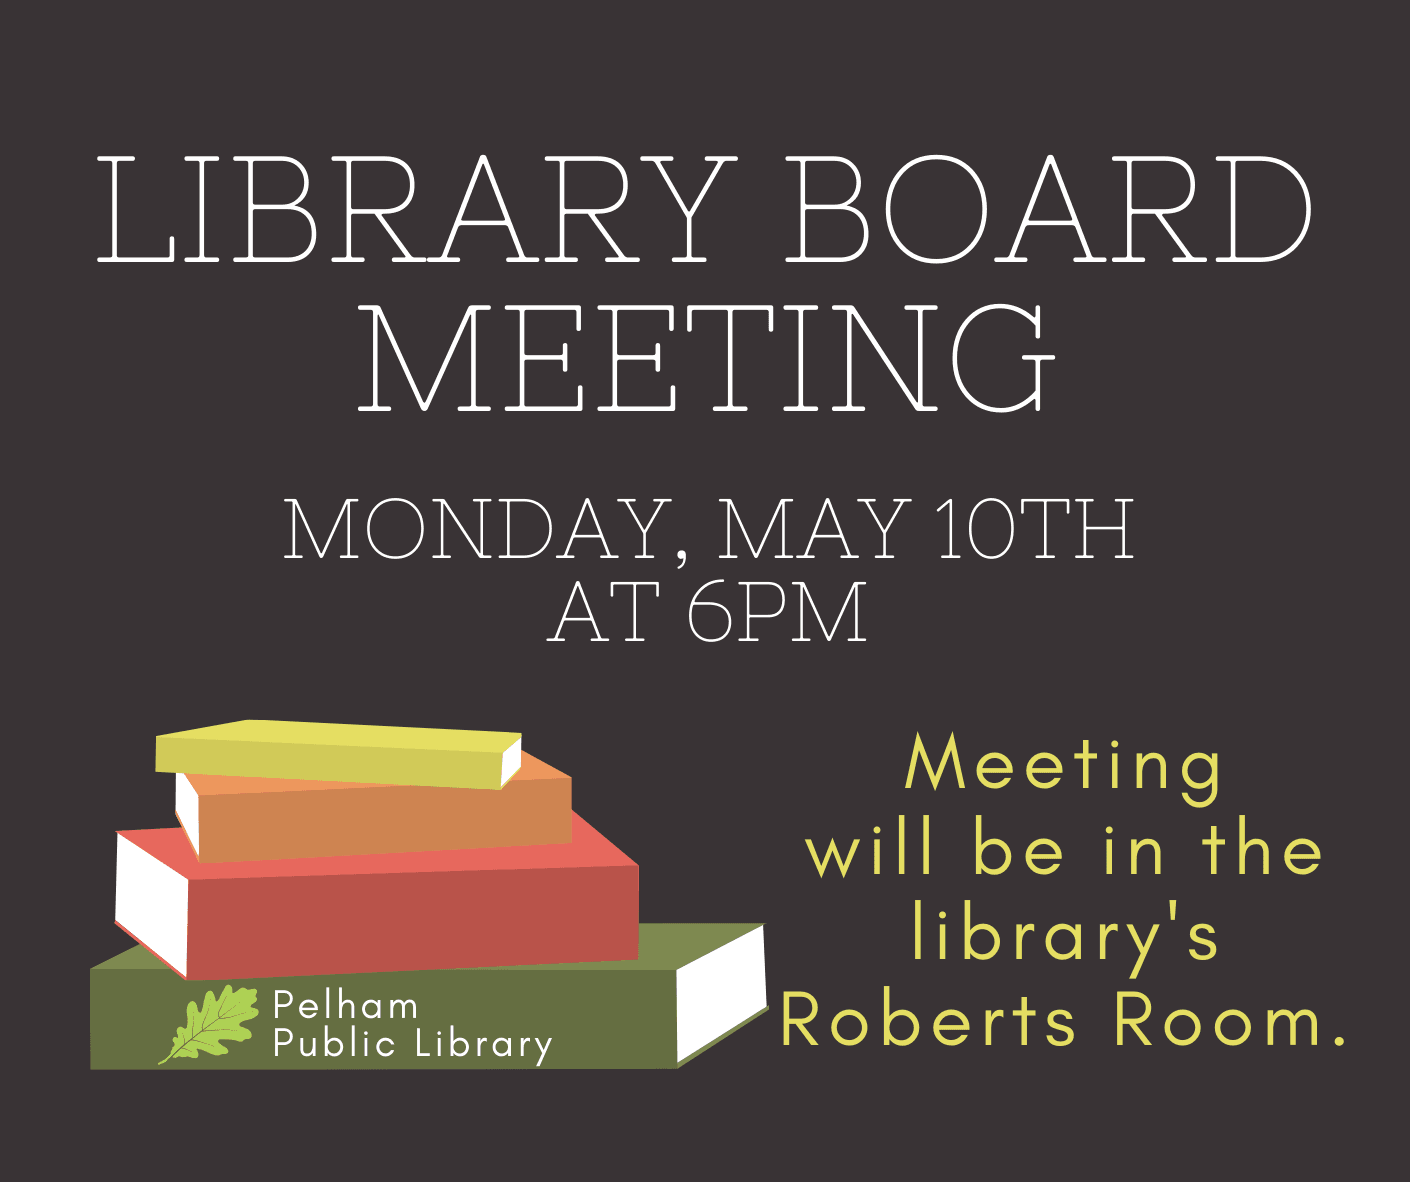 Library Board meeting May 10th at 6pm